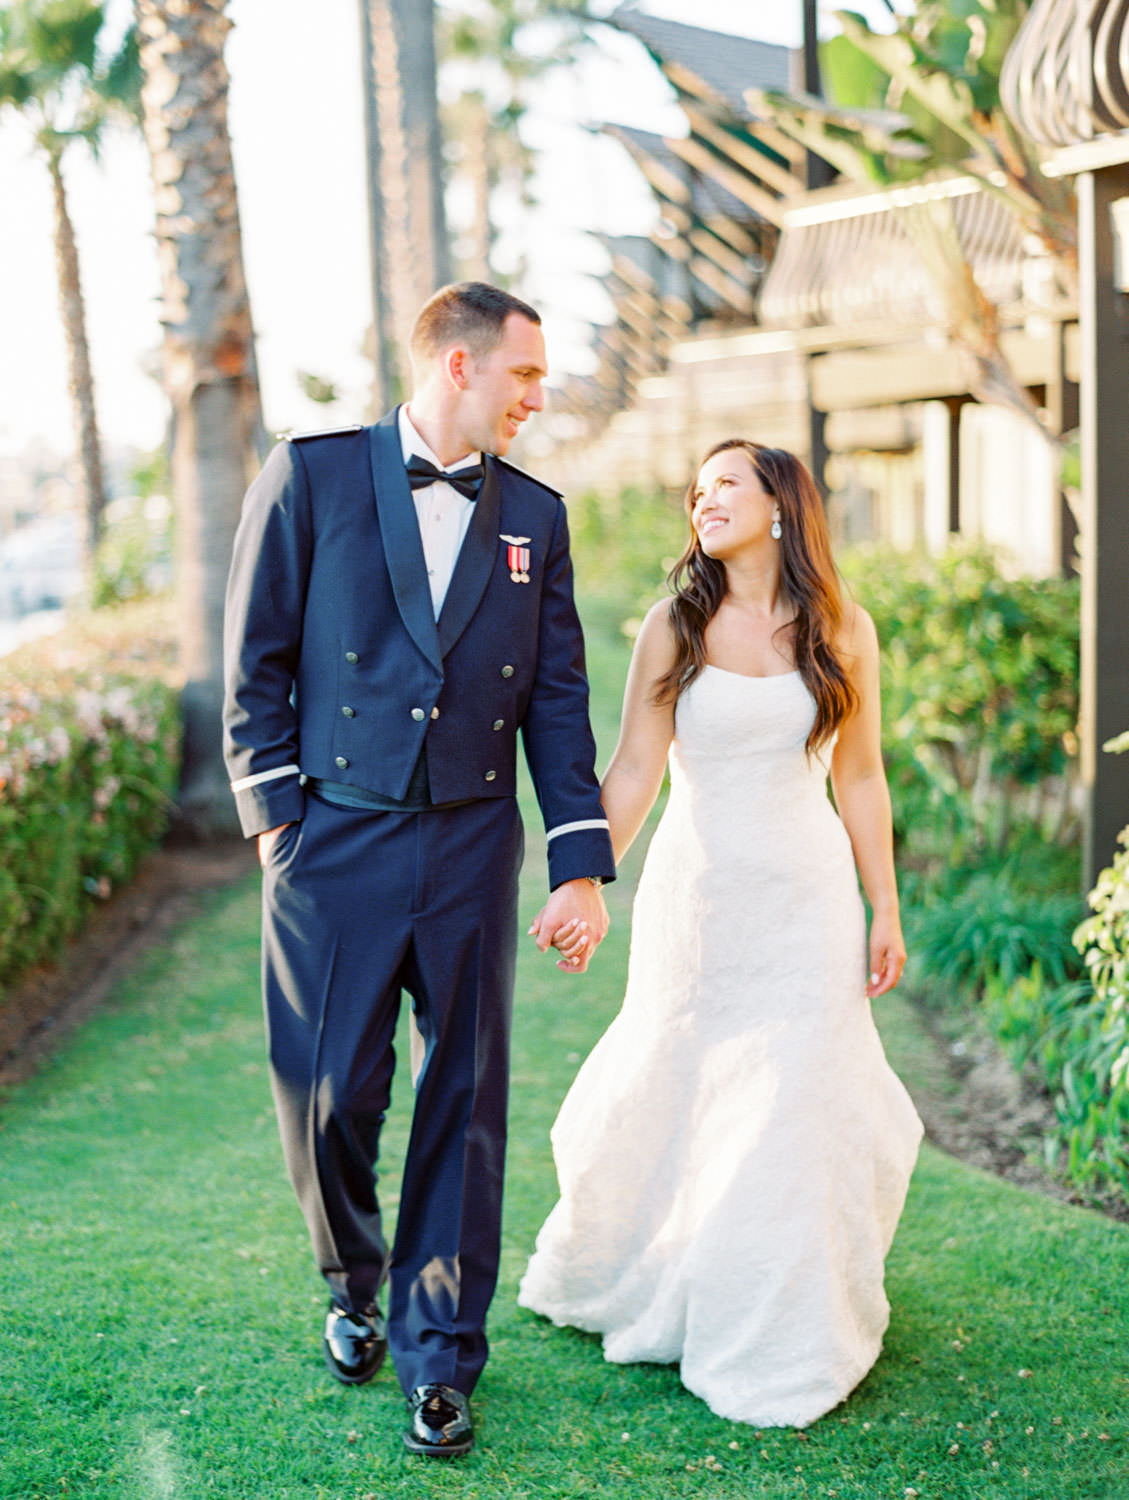 Bride and groom walking during sunset captured on film. Wedding at Humphreys Half Moon Inn by Cavin Elizabeth Photography